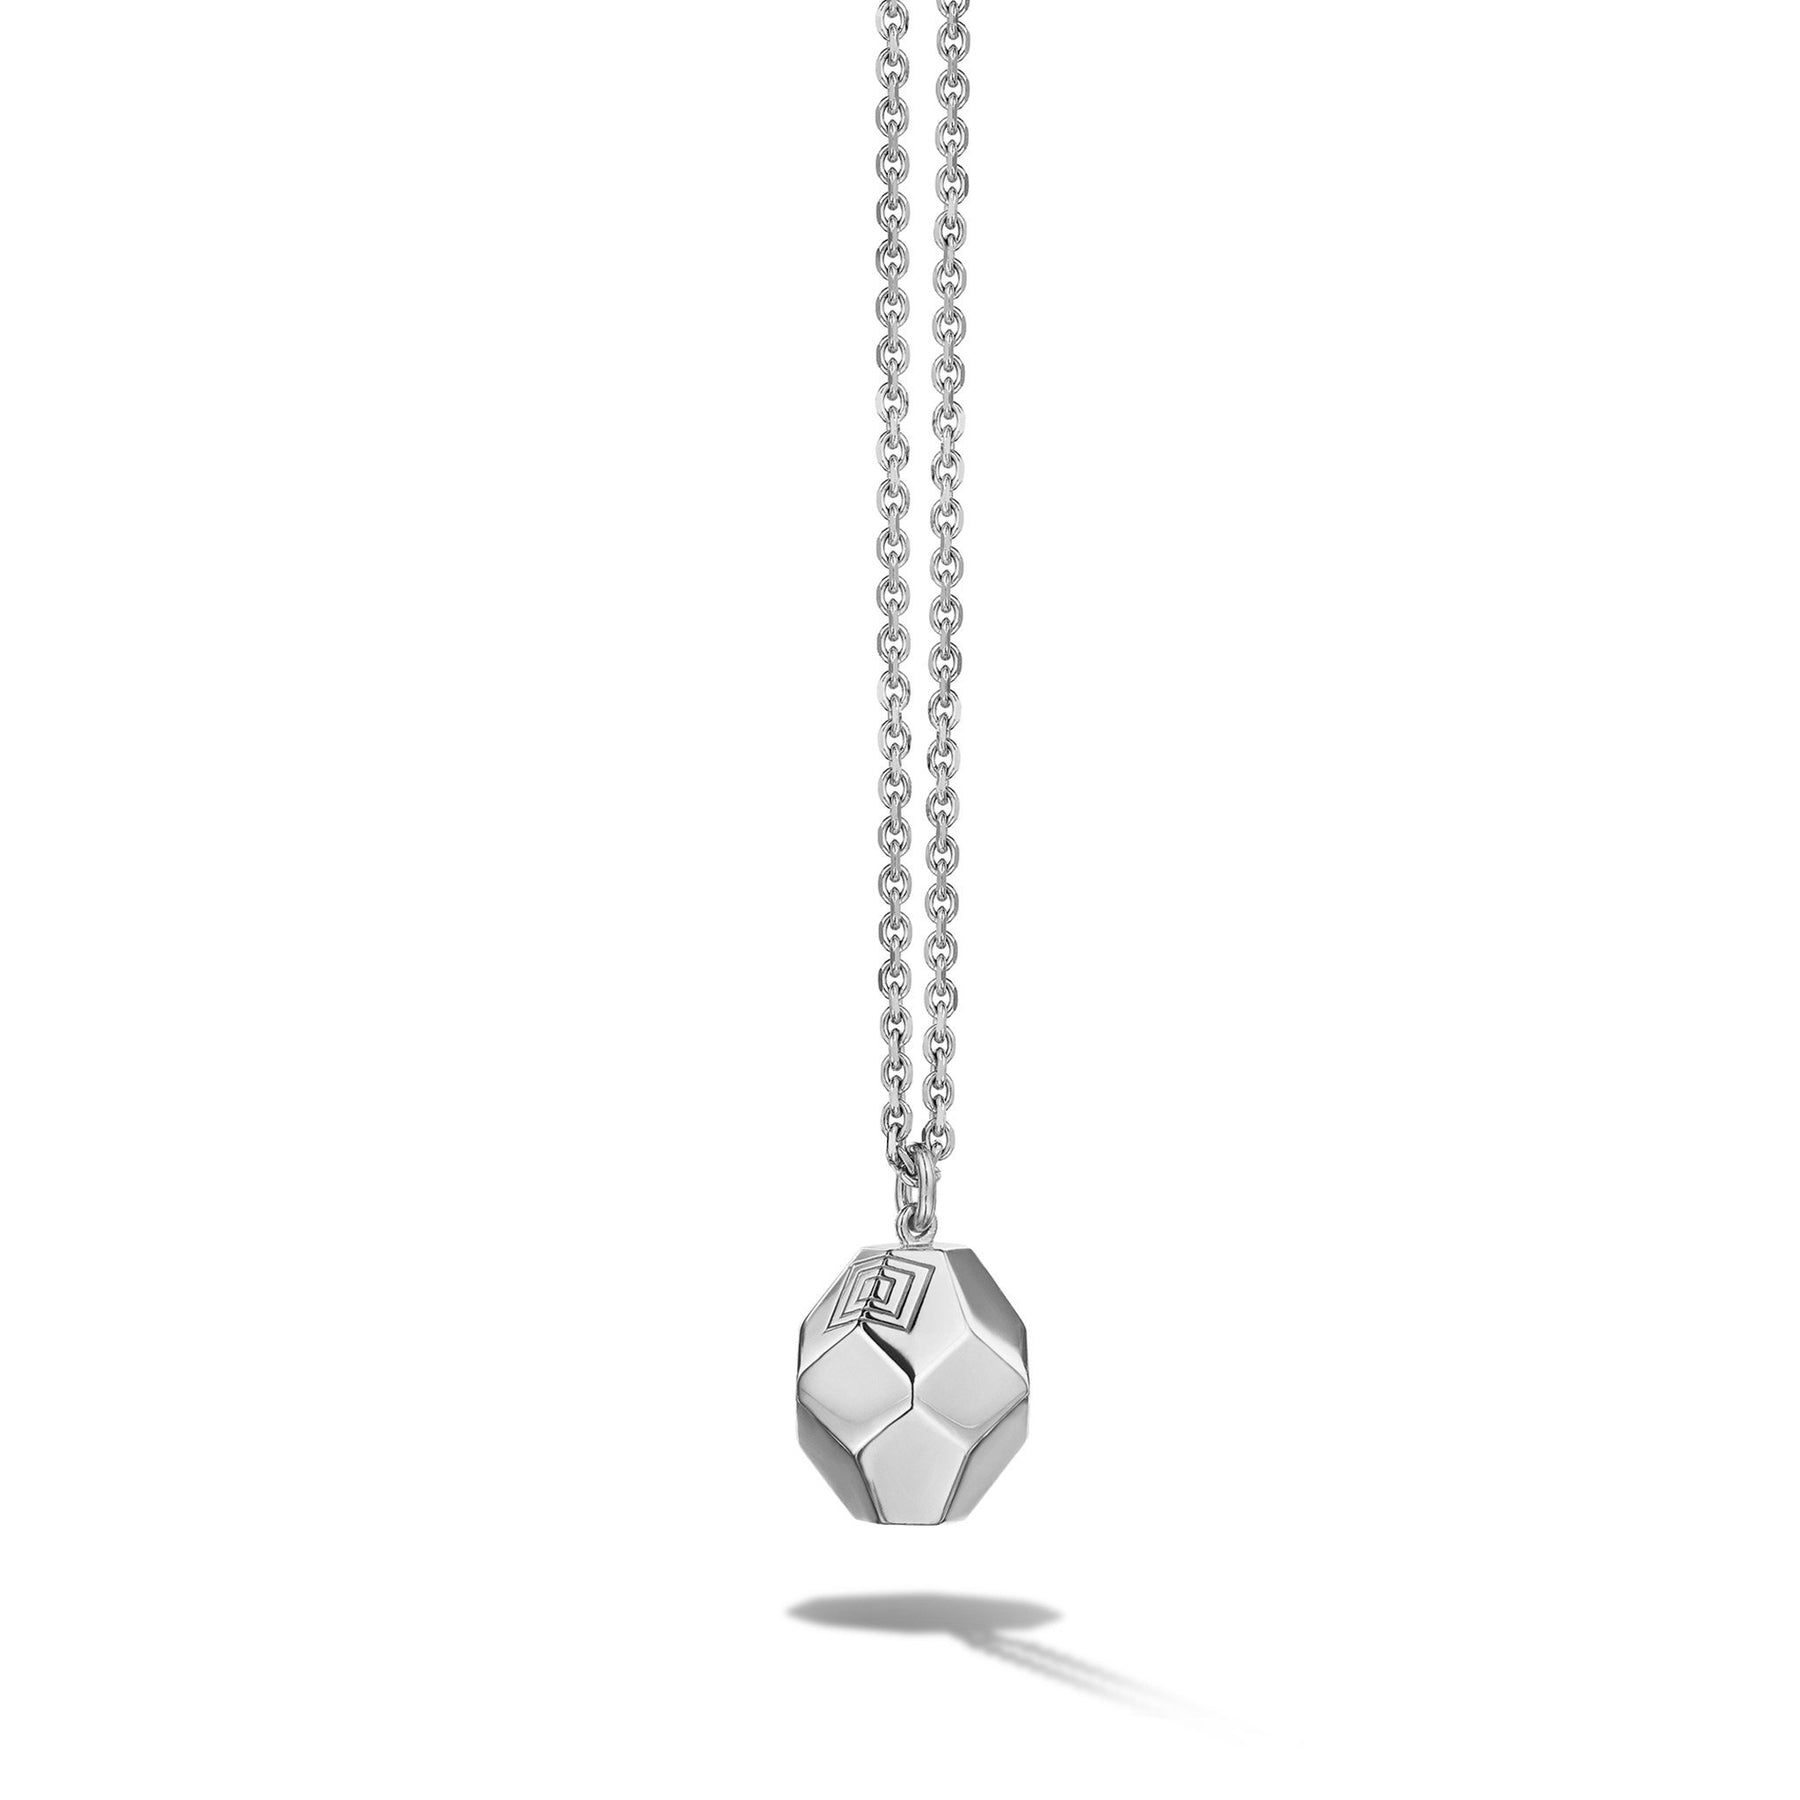 Mimi-So-Jackson-Collection-Ludlow-Rock-Necklace-Medium_18k White Gold